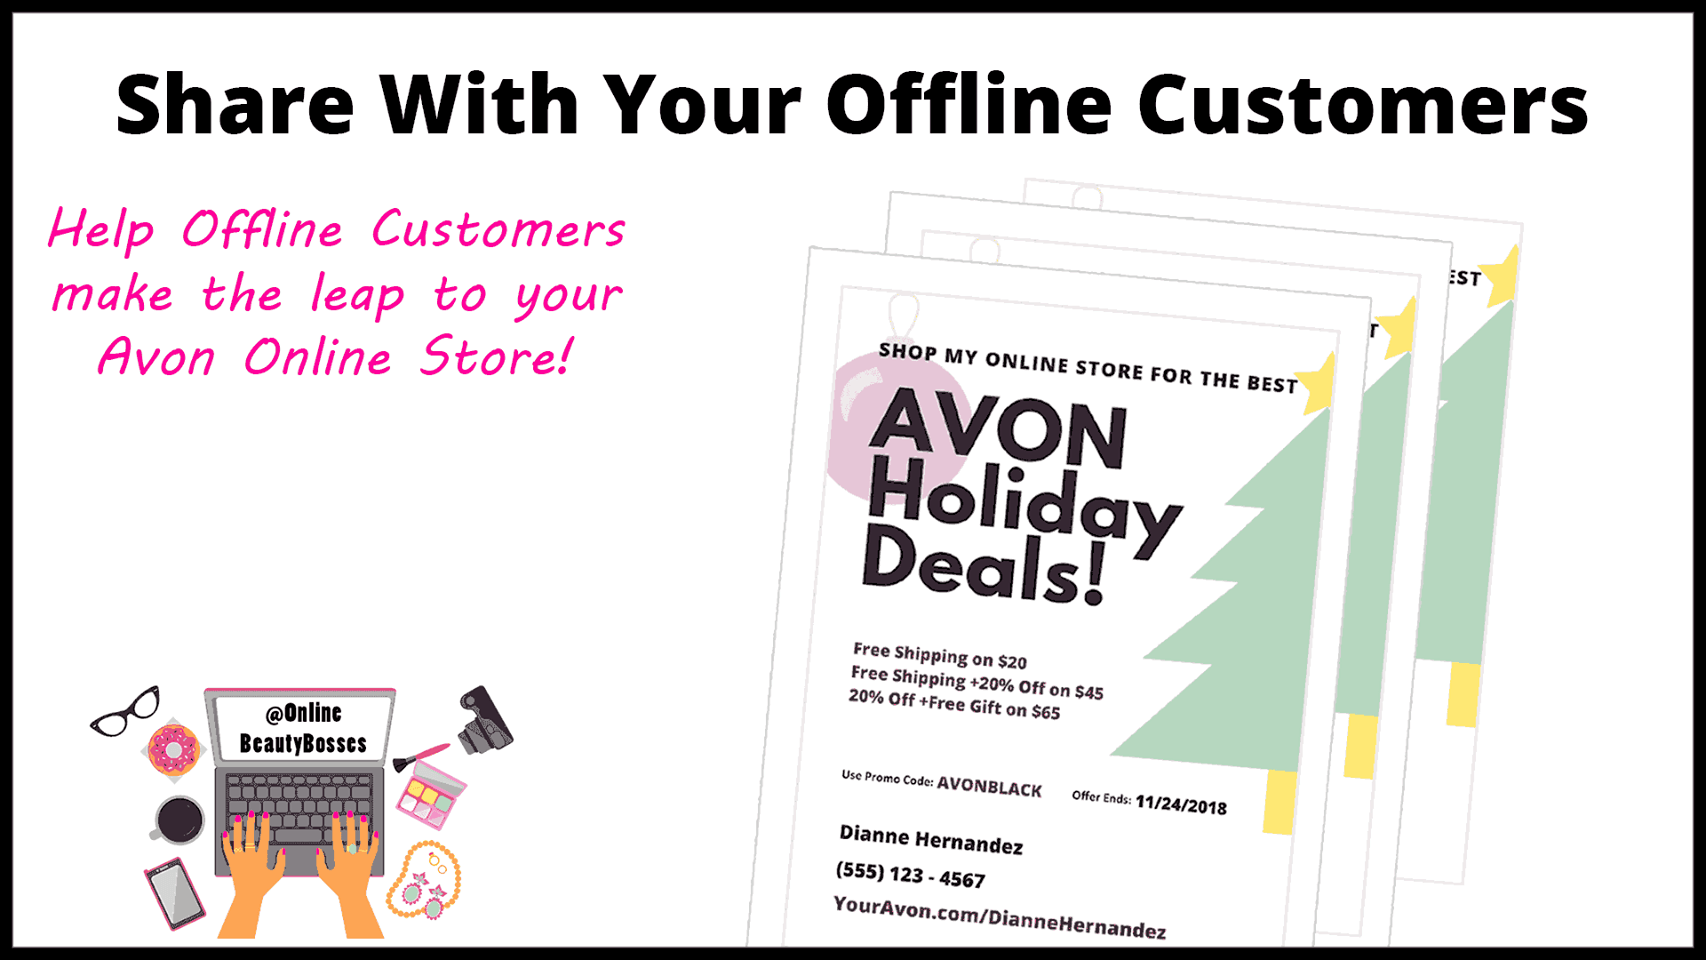 Share With Offline Customers